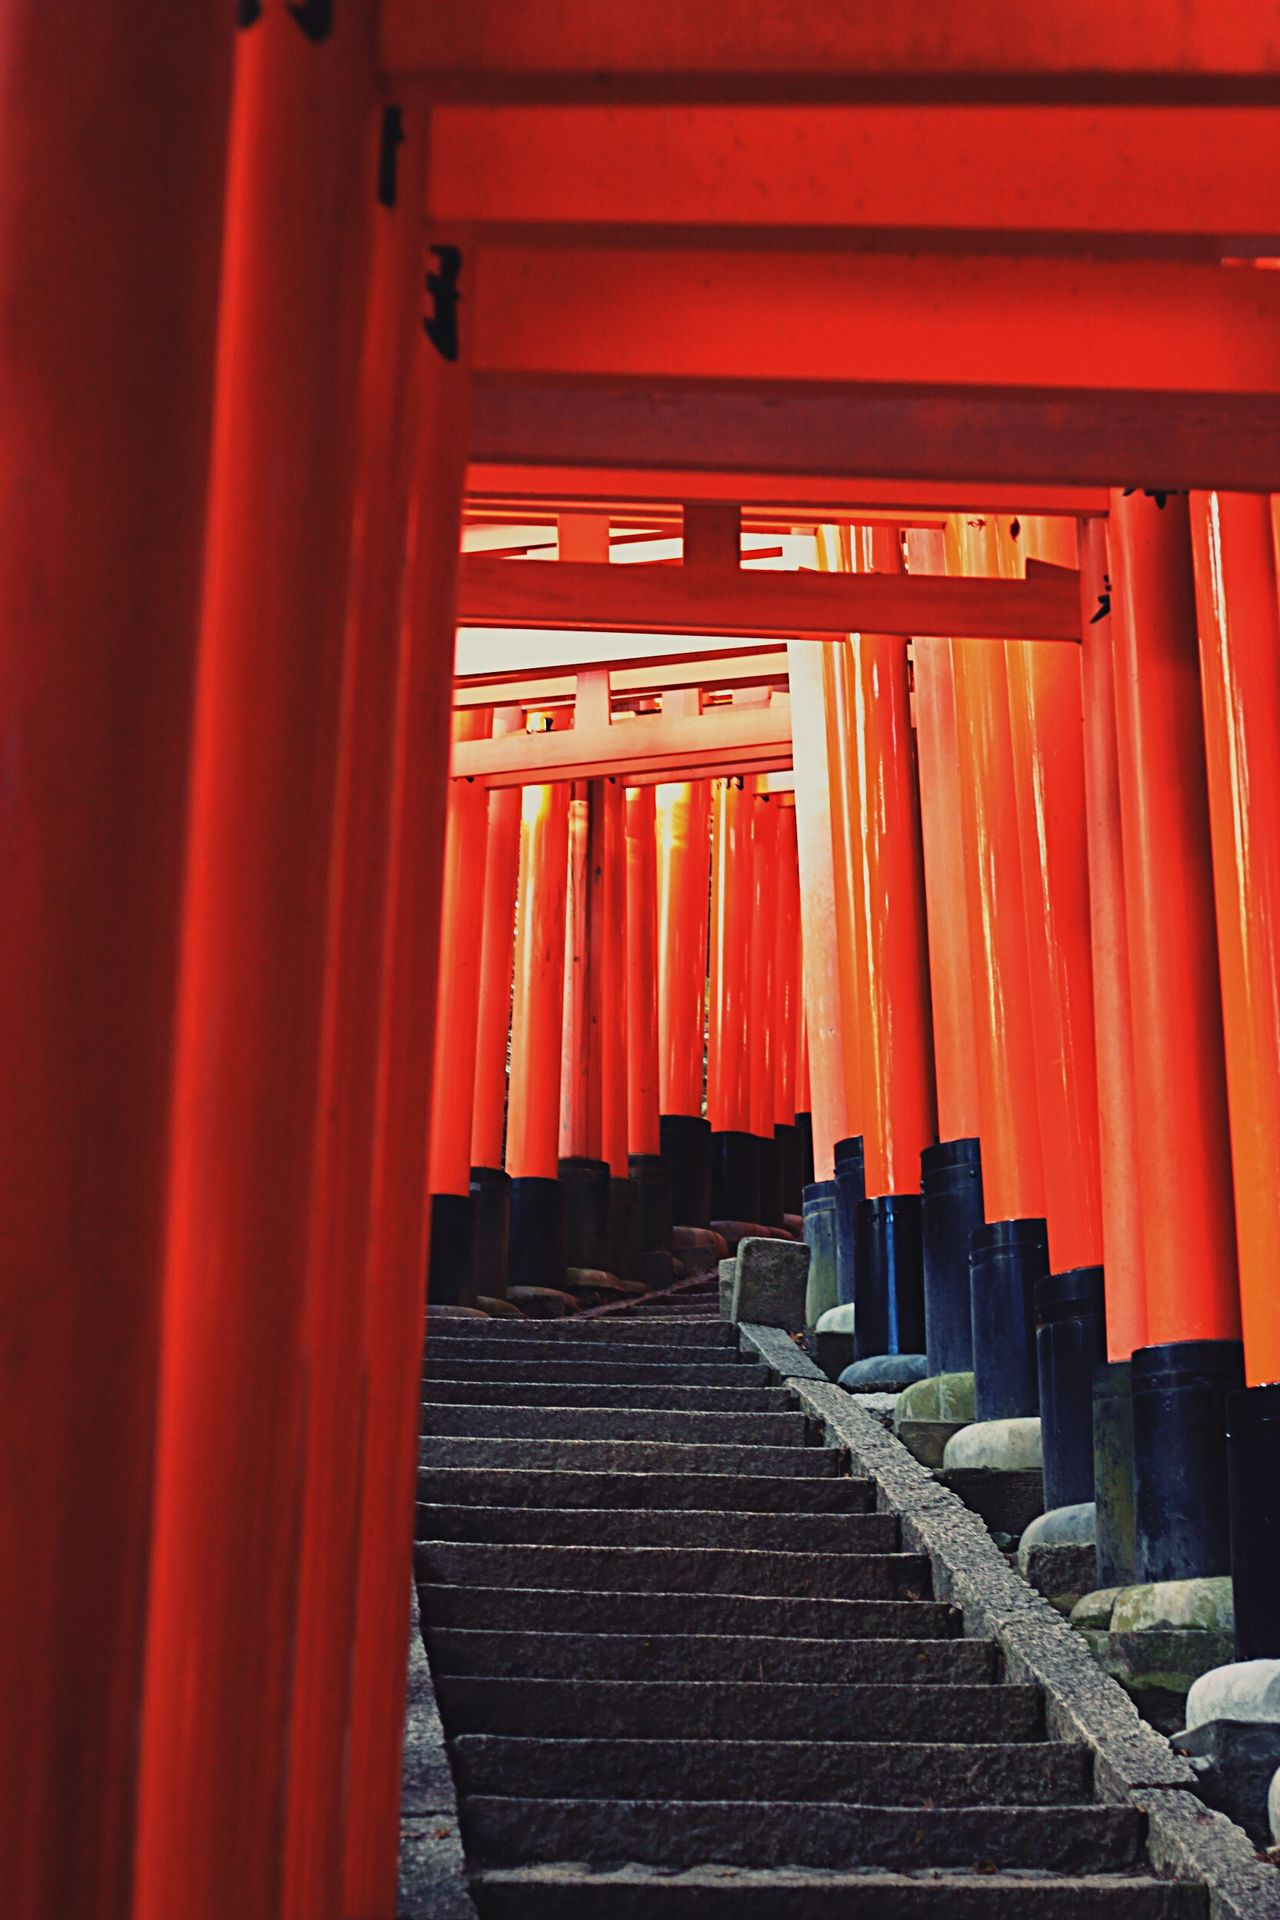 Torii heaven Fushimi Inari Shrine Kyoto Japan TORII Religion Spirituality Place Of Worship Red Cultures EyeEmNewHere Shrine Day Built Structure Architecture